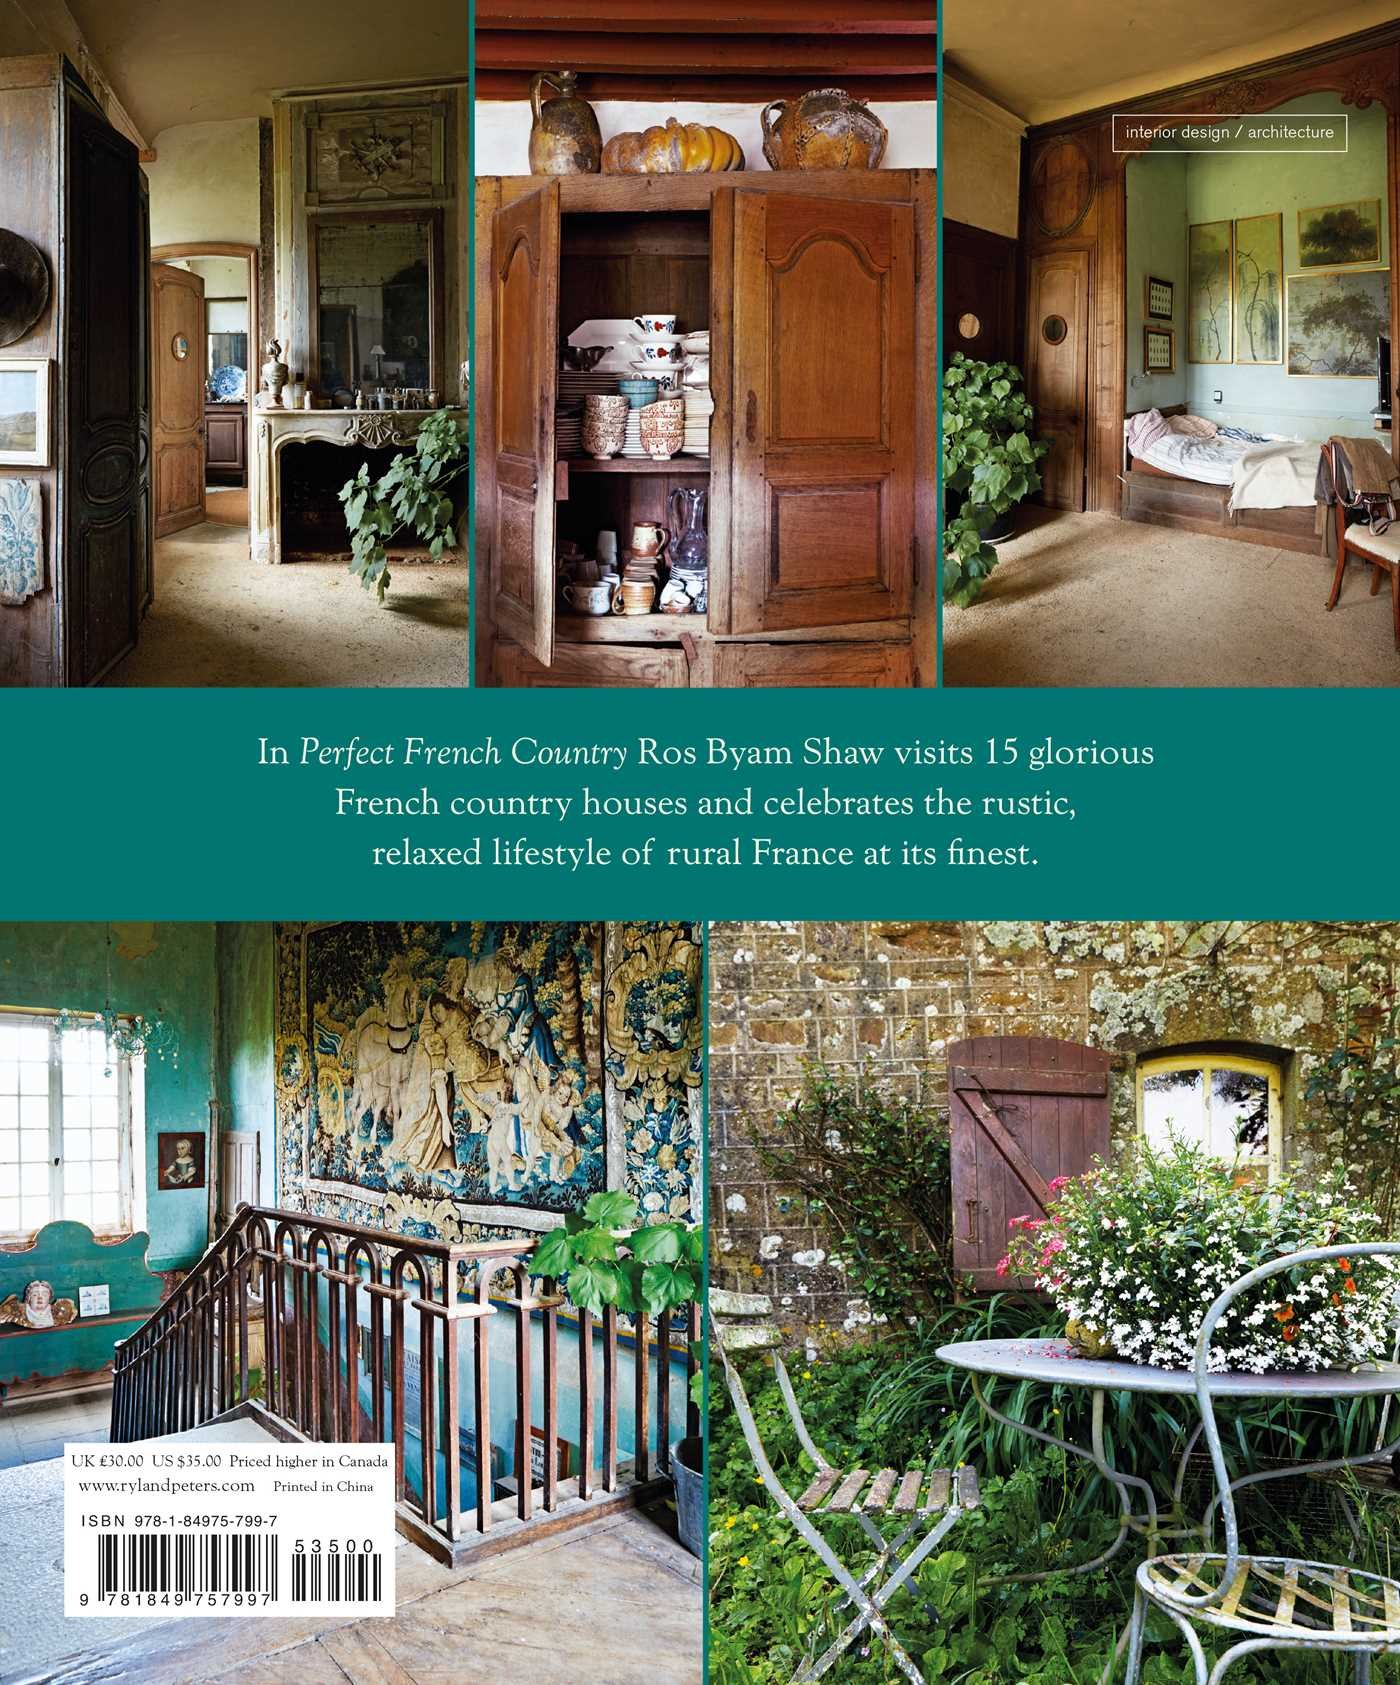 Perfect French Country: Inspirational Interiors From Rural France: Ros Byam  Shaw: 9781849757997: Amazon.com: Books